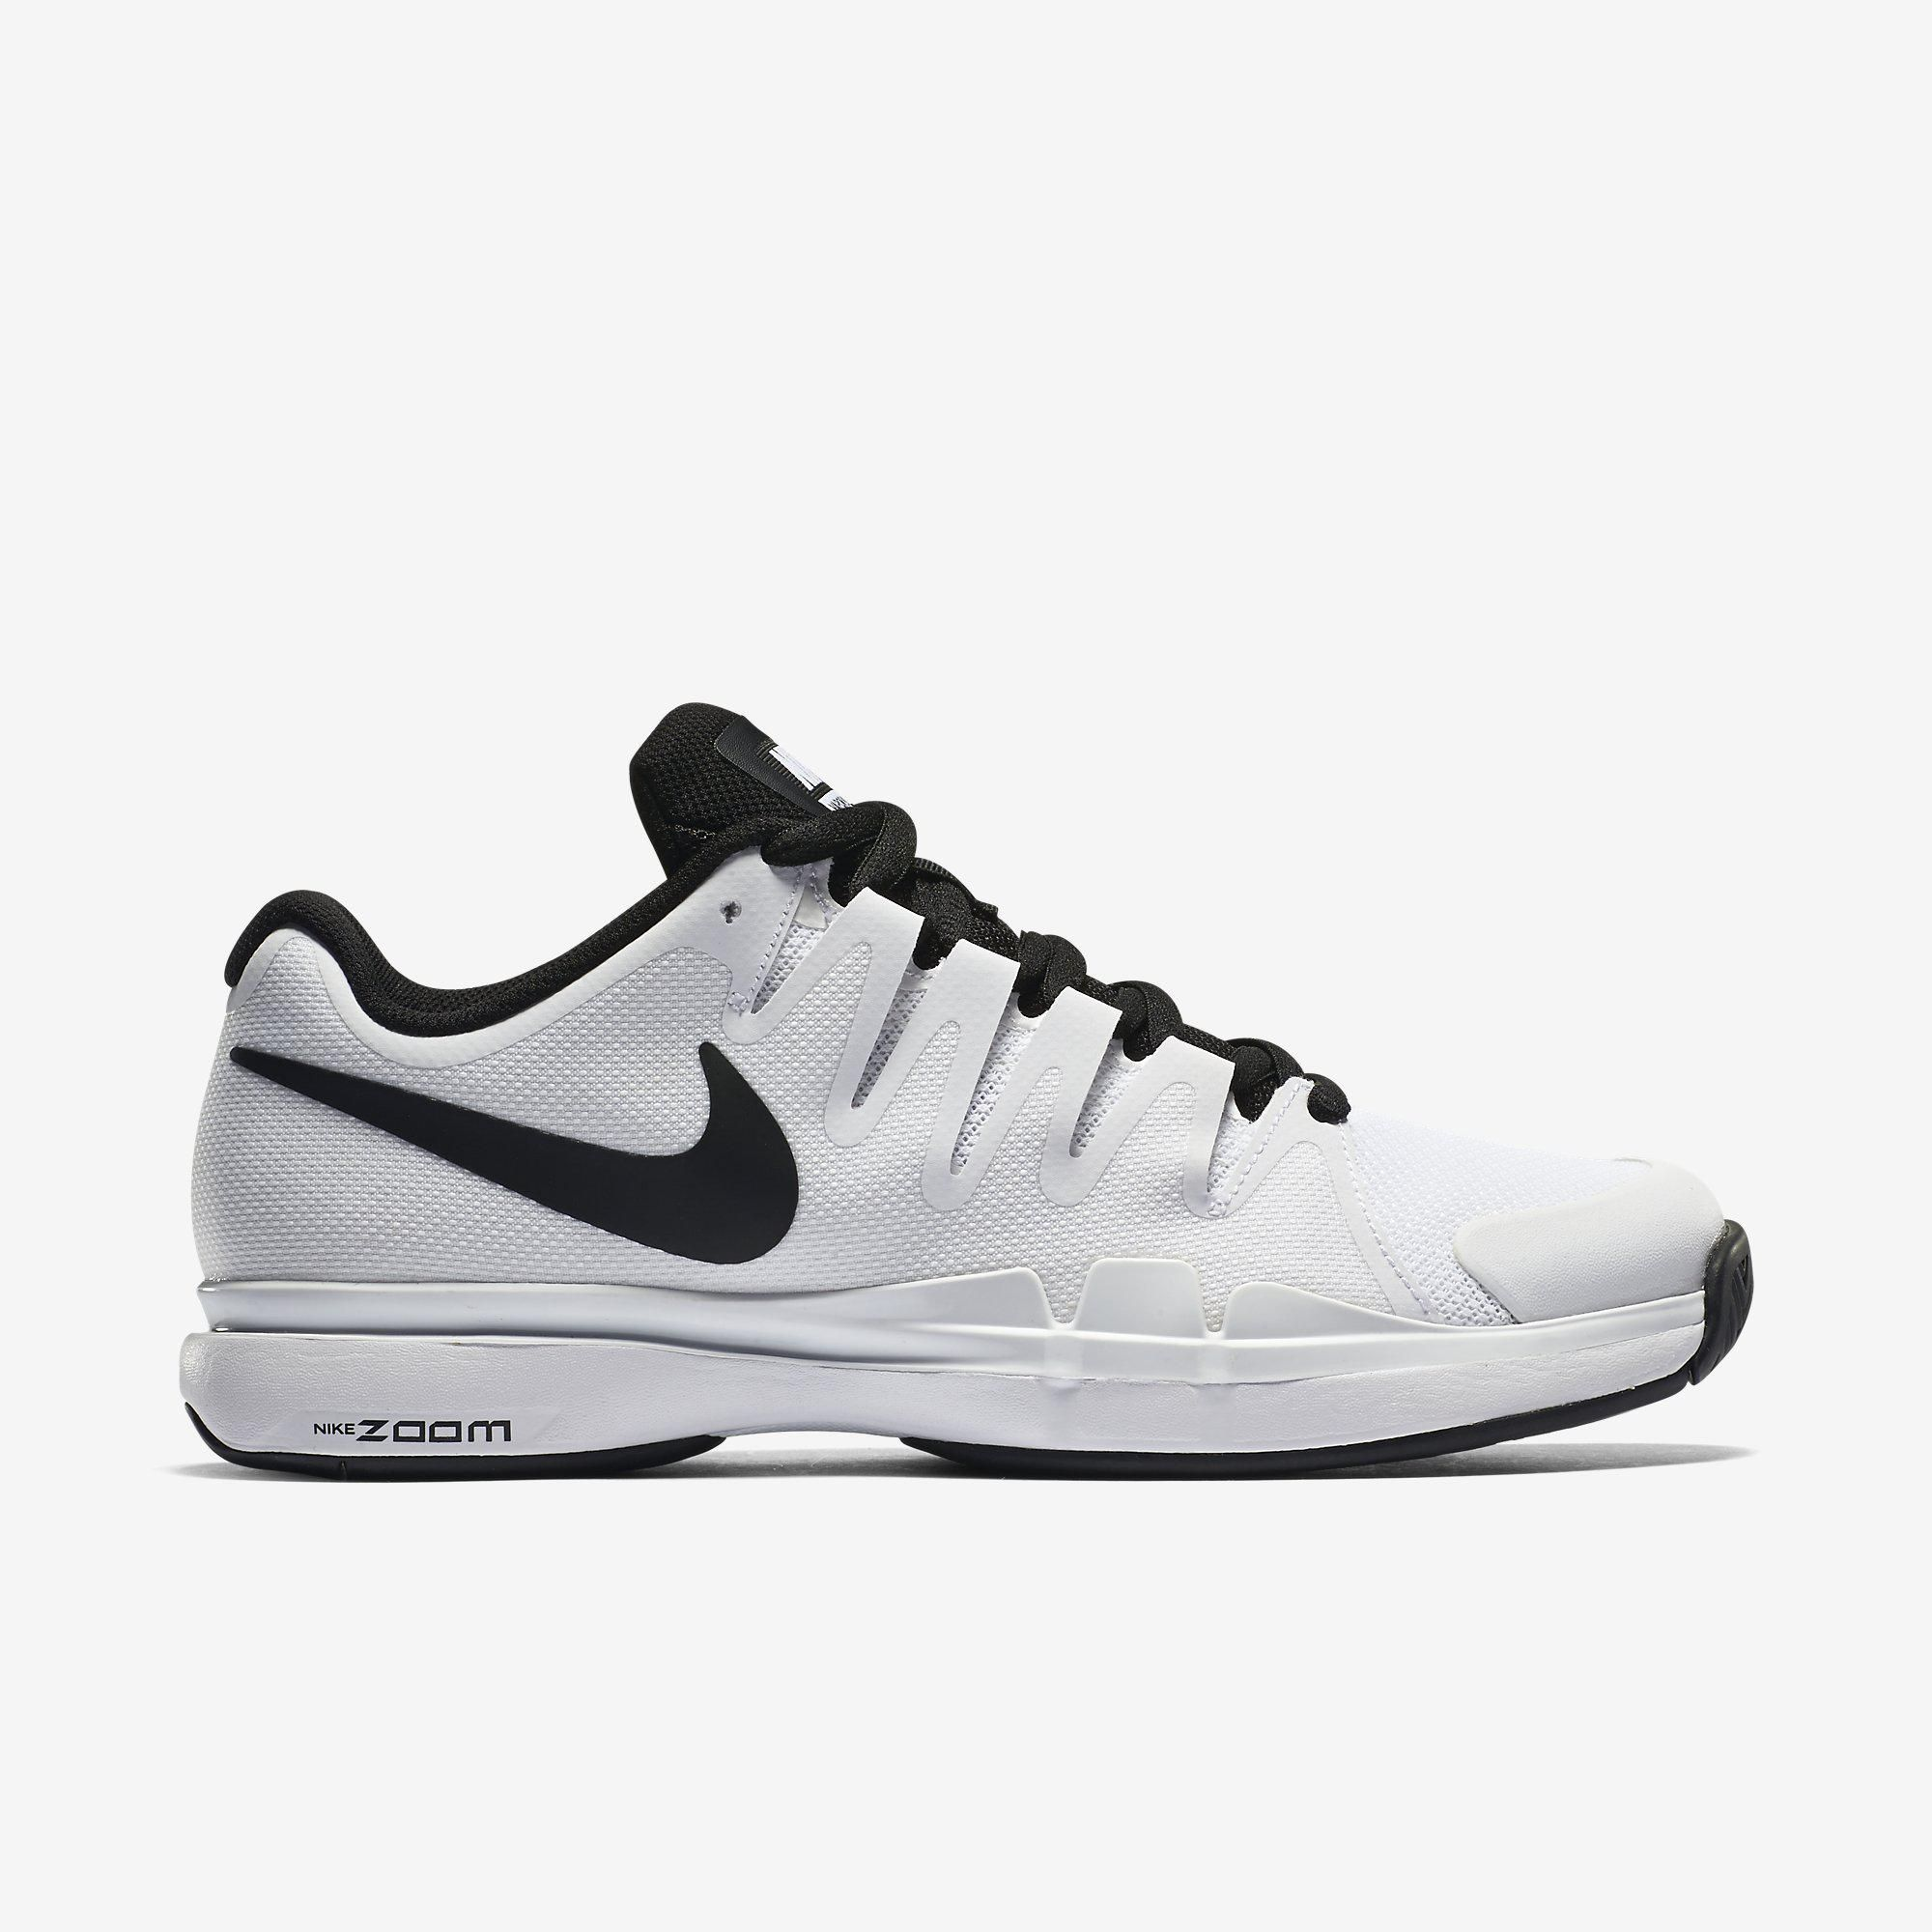 Nike Mens Zoom Vapor 9.5 Tour Tennis Shoes - White/Black